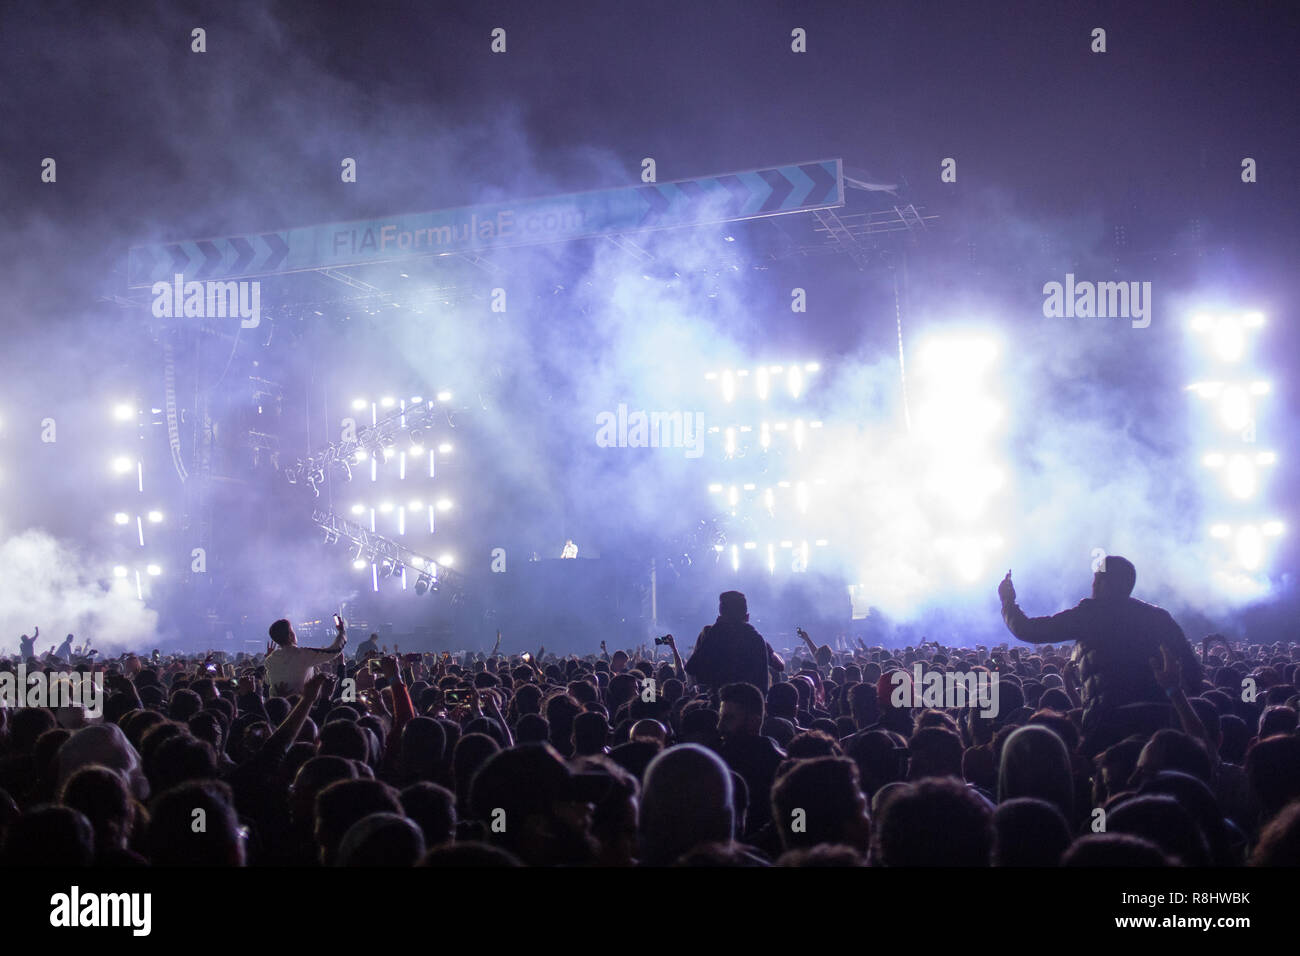 Ad Diriyah, Saudi Arabia. 15th December 2018. French DJ David Guetta plays to an historic open-air crowd at the season-opening Formula E racing event in Saudi Arabia. Credit: Stephen Lioy/Alamy Live News - Stock Image